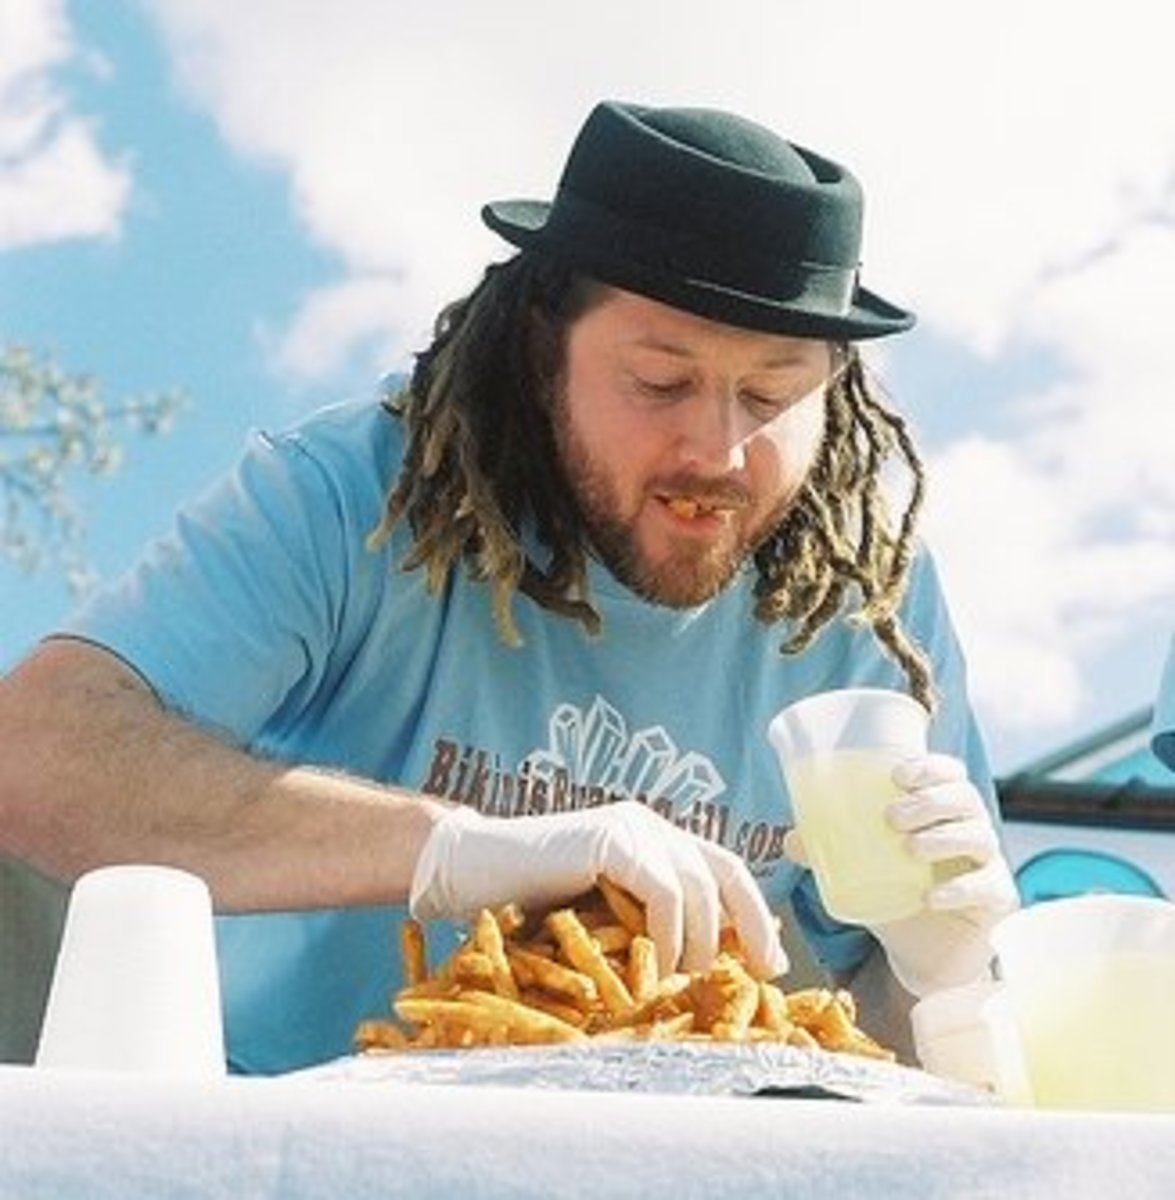 Crazy Legs Conti takes on a mountain of fries; the fries lose.